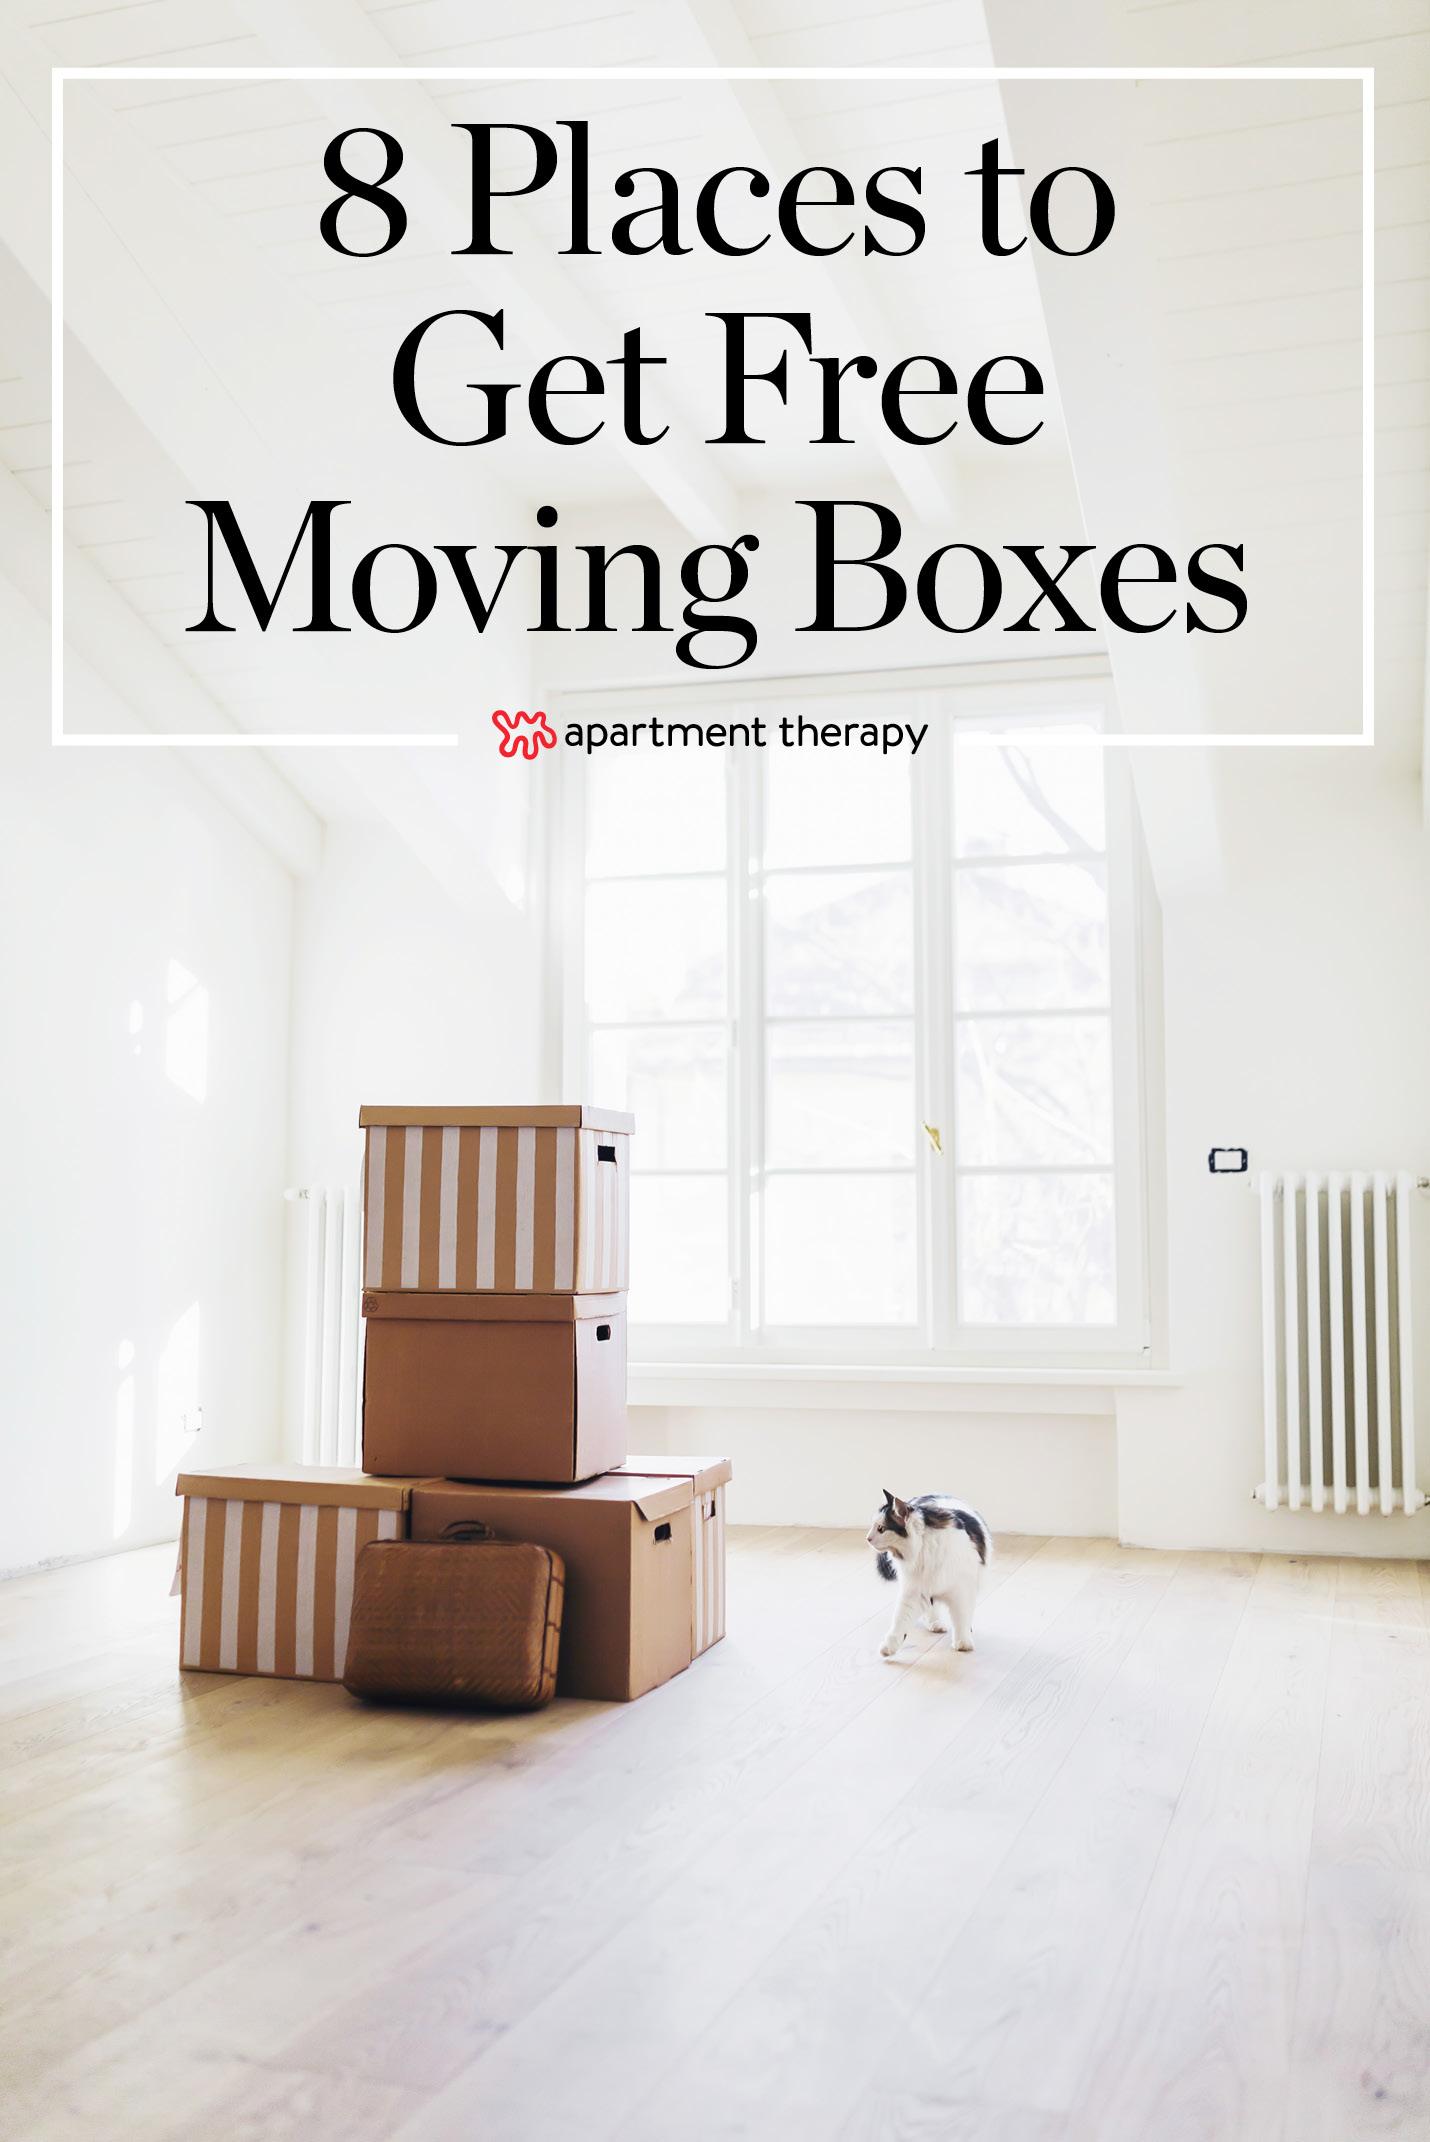 8 Places to Get Free Moving Boxes | Apartment Therapy